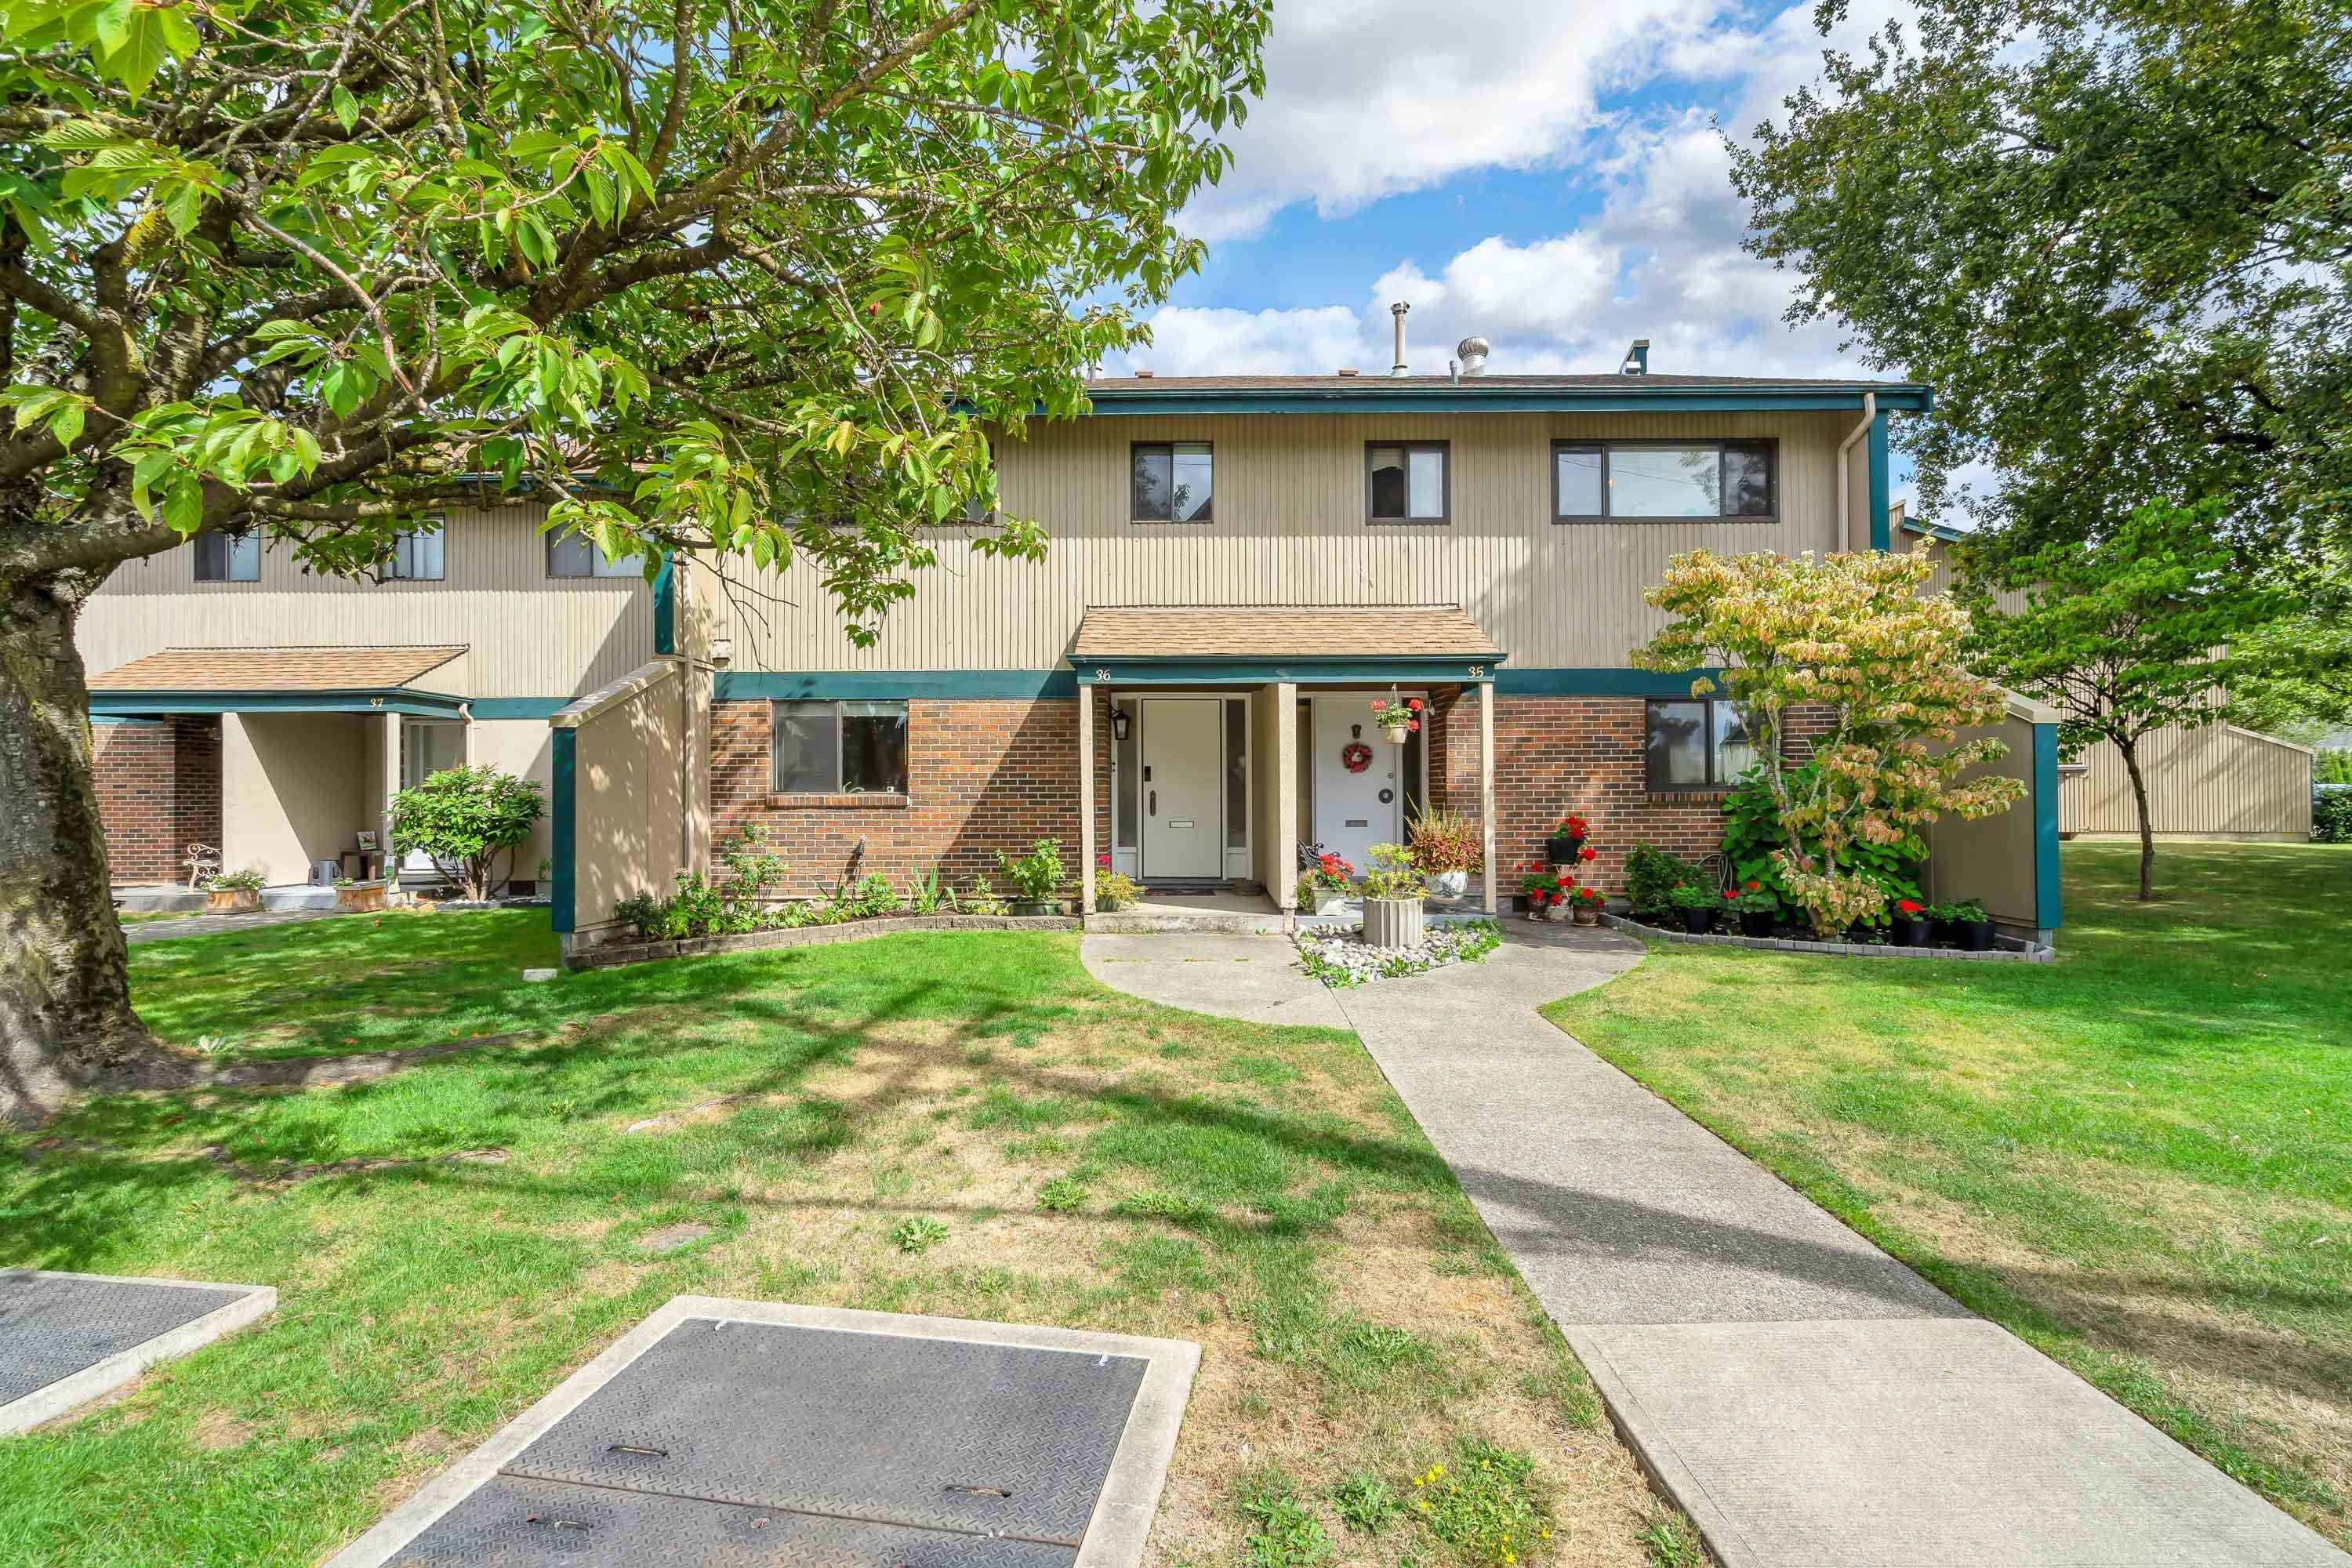 """Main Photo: 36 5850 177B Street in Surrey: Cloverdale BC Townhouse for sale in """"Dogwood Gardens"""" (Cloverdale)  : MLS®# R2613393"""